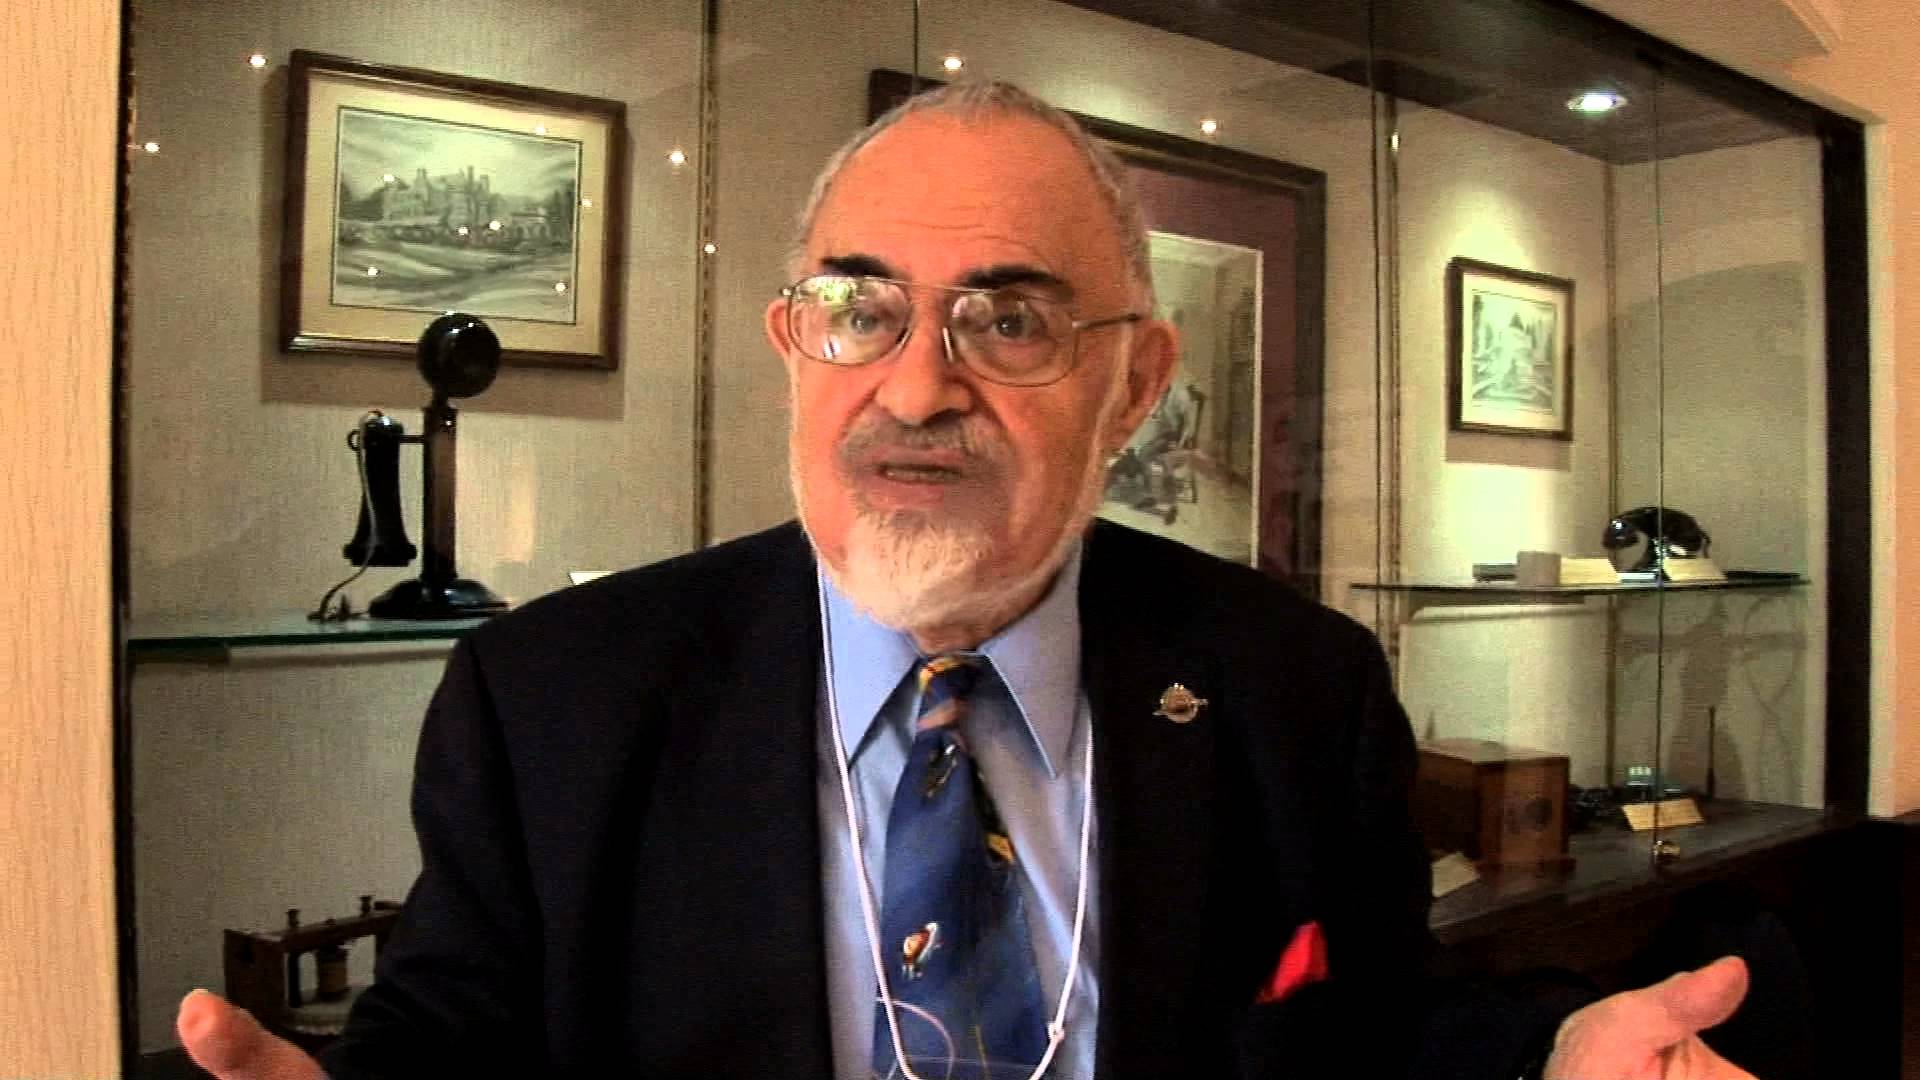 Roswell Secrets Of Stanton Friedman